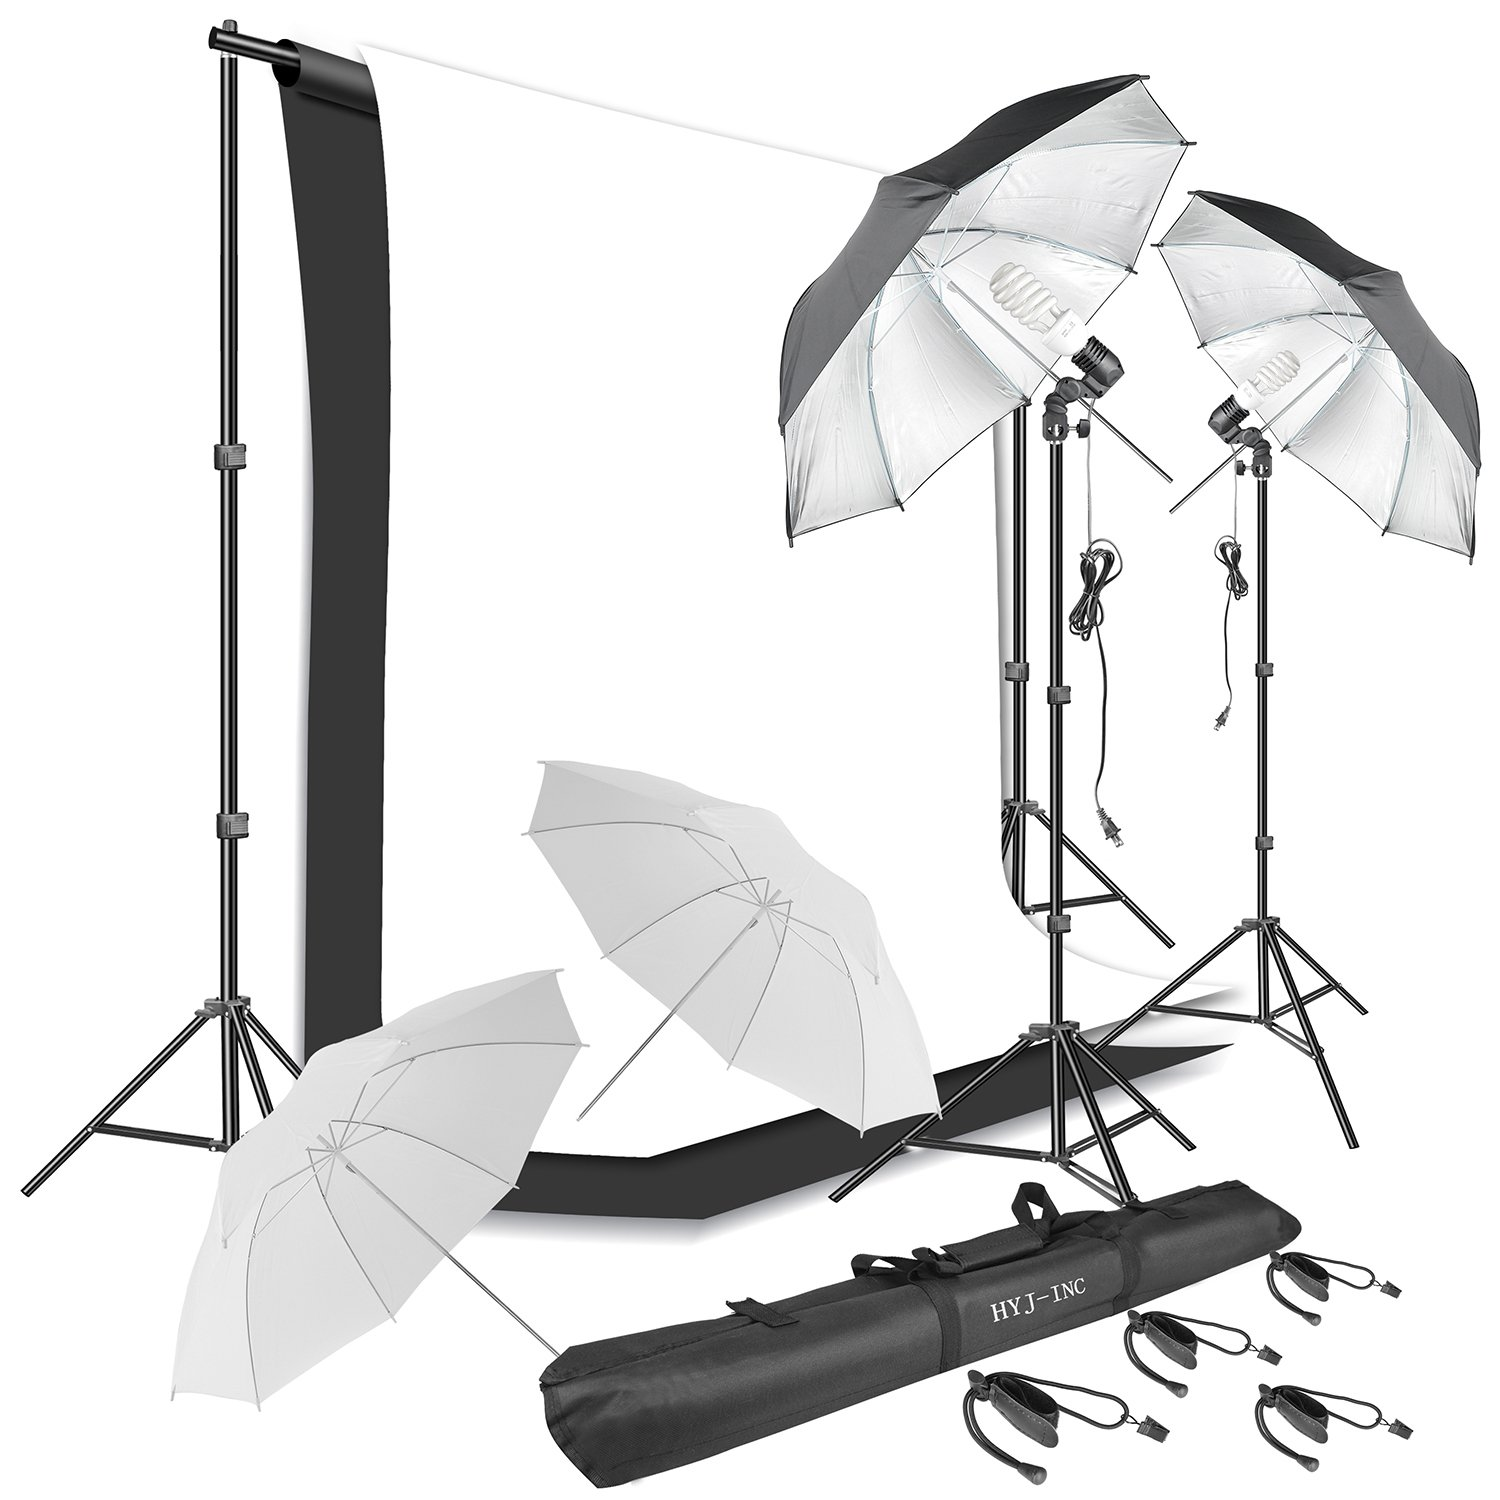 HYJ-INC Photography Umbrella Continuous Lighting Kit,Muslin Backdrop Kit(White Black), Backdrop Clips Clamp,10ft Photo Background Photography Stand System for Photo Video Studio Shooting by HYJ-INC